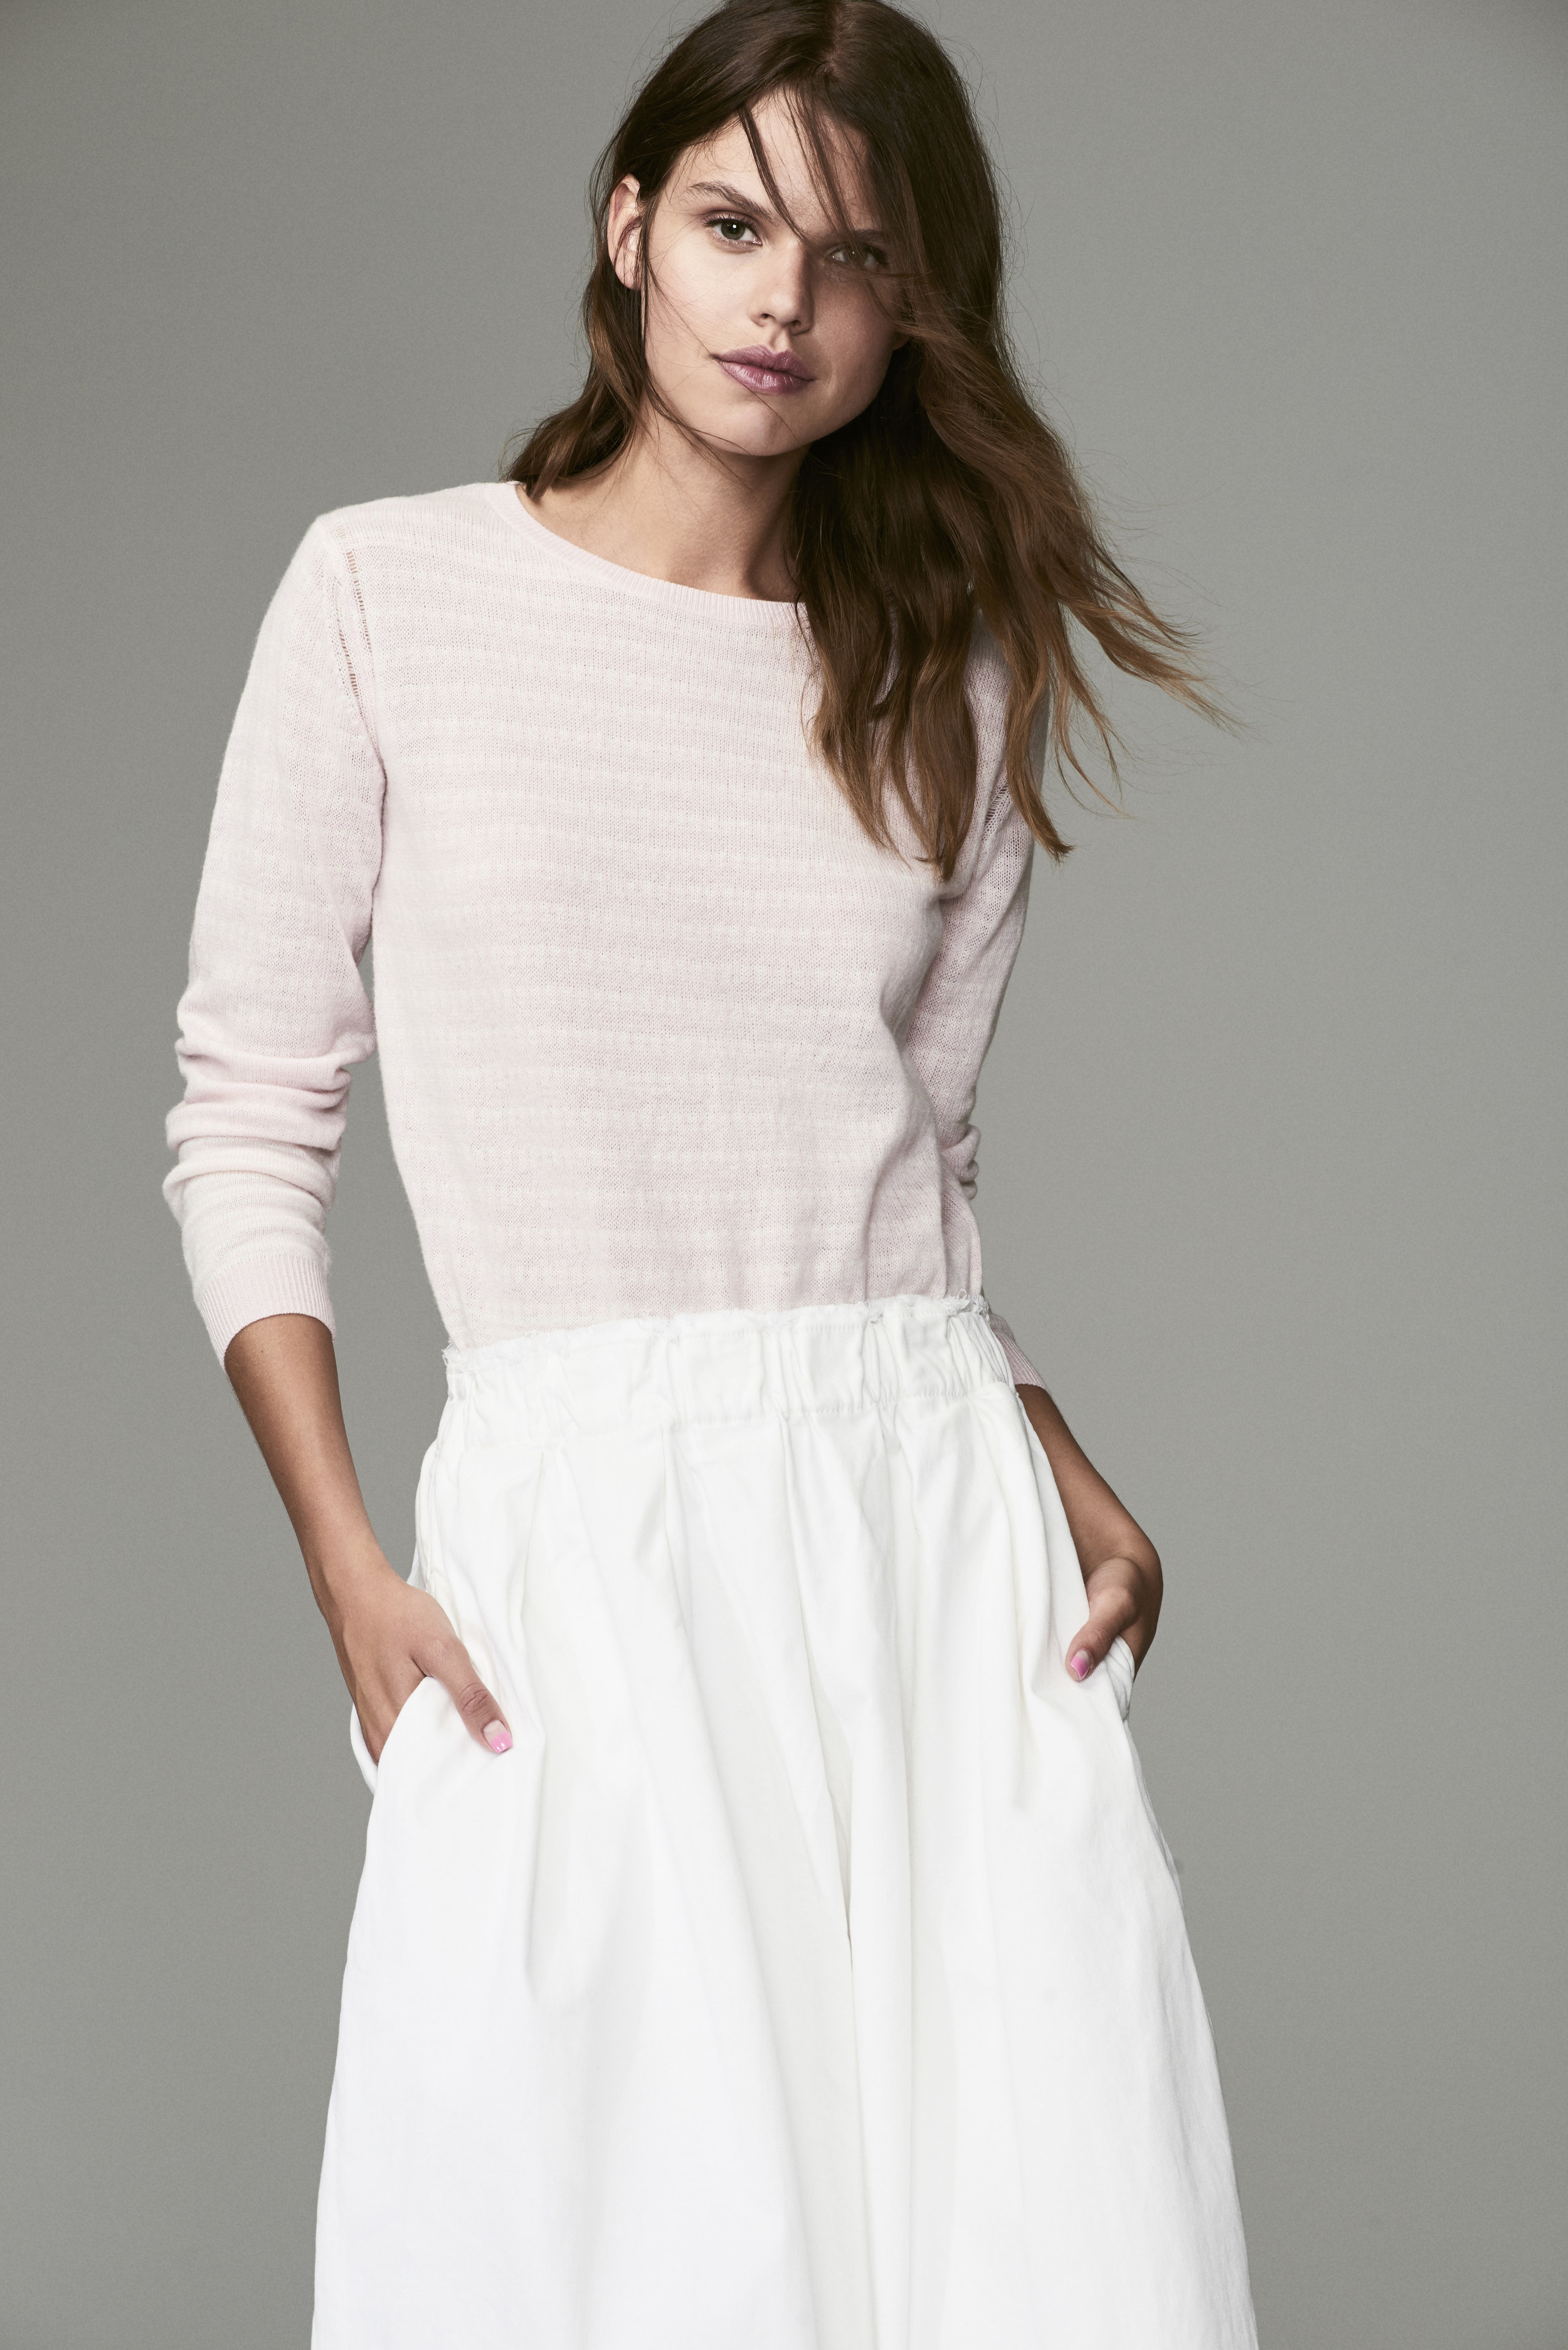 OUR PINK LEMONAID EXCLUSIVE KNIT SWEATER PROVIDES PRETTY AND PRACTICAL STYLE; CONFIDENTLY WORKING ITS WAY IN TO YOUR OFFICE WARDROBE. CLICK FOR DETAILS.